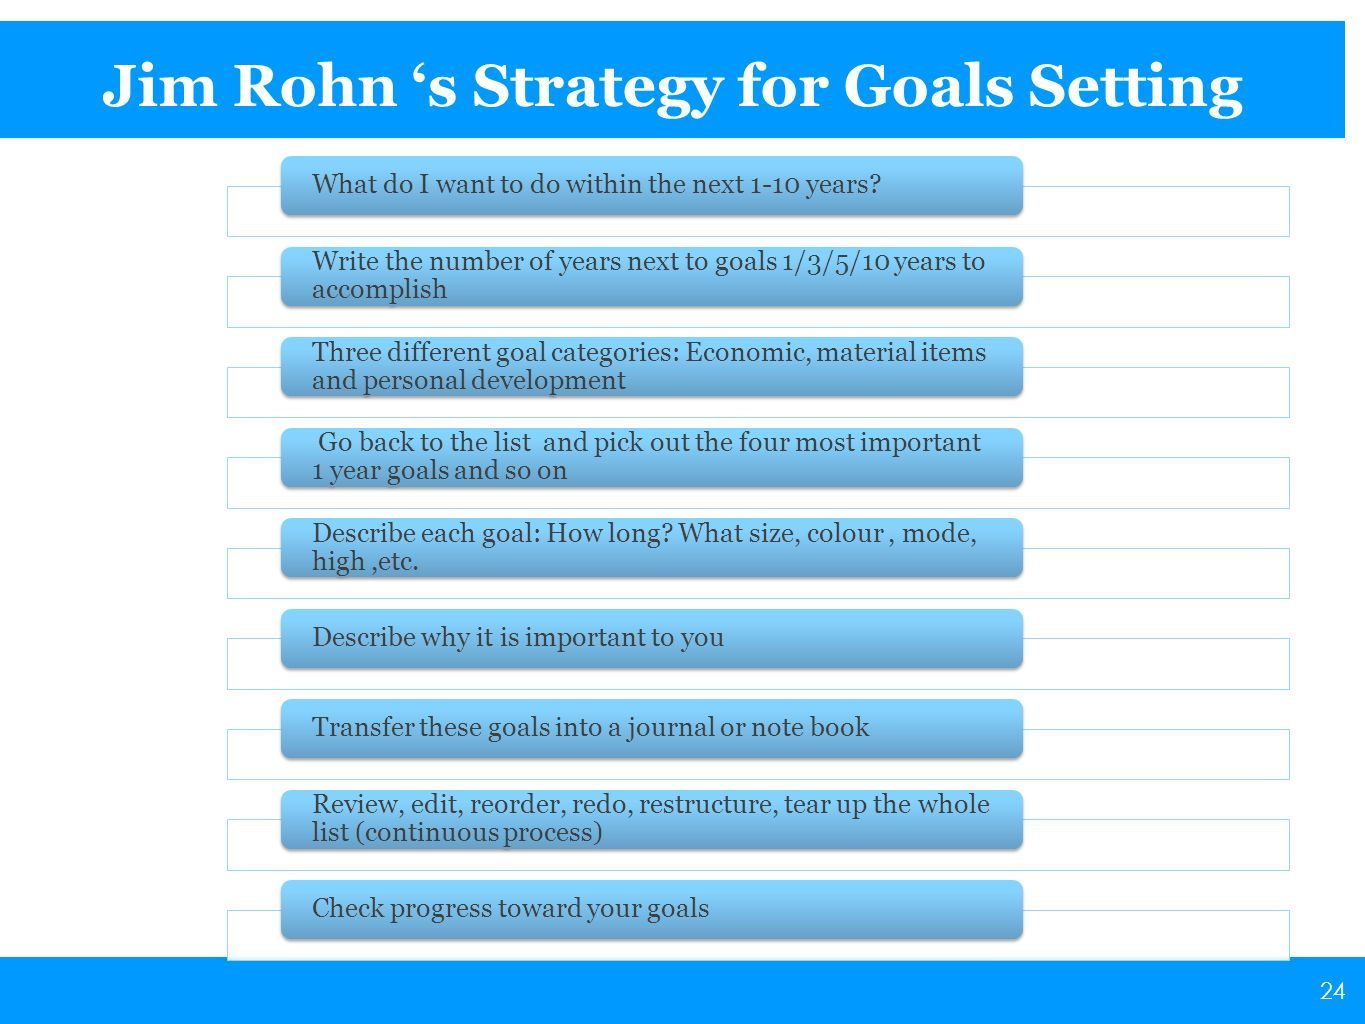 worksheet Jim Rohn Goal Setting Worksheet 12 step goals setting guide for personal and professional success by 24 jim rohn s strategy what do i want to within